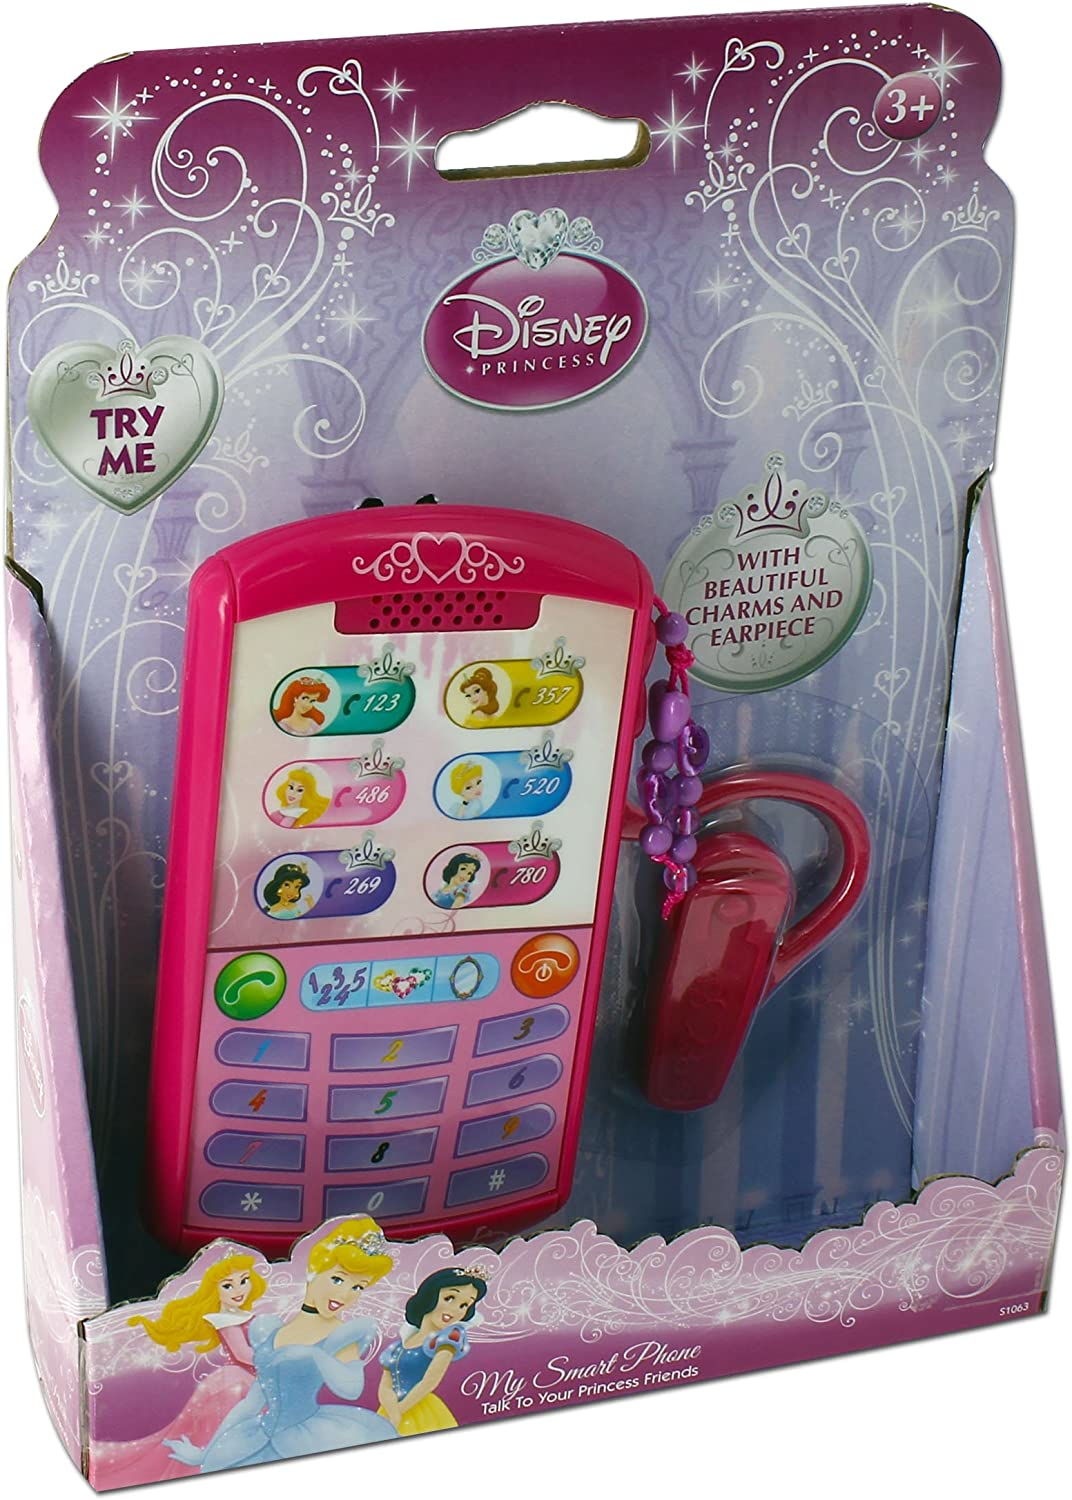 KD Toys Inspiration Works Disney Princess Smartphone